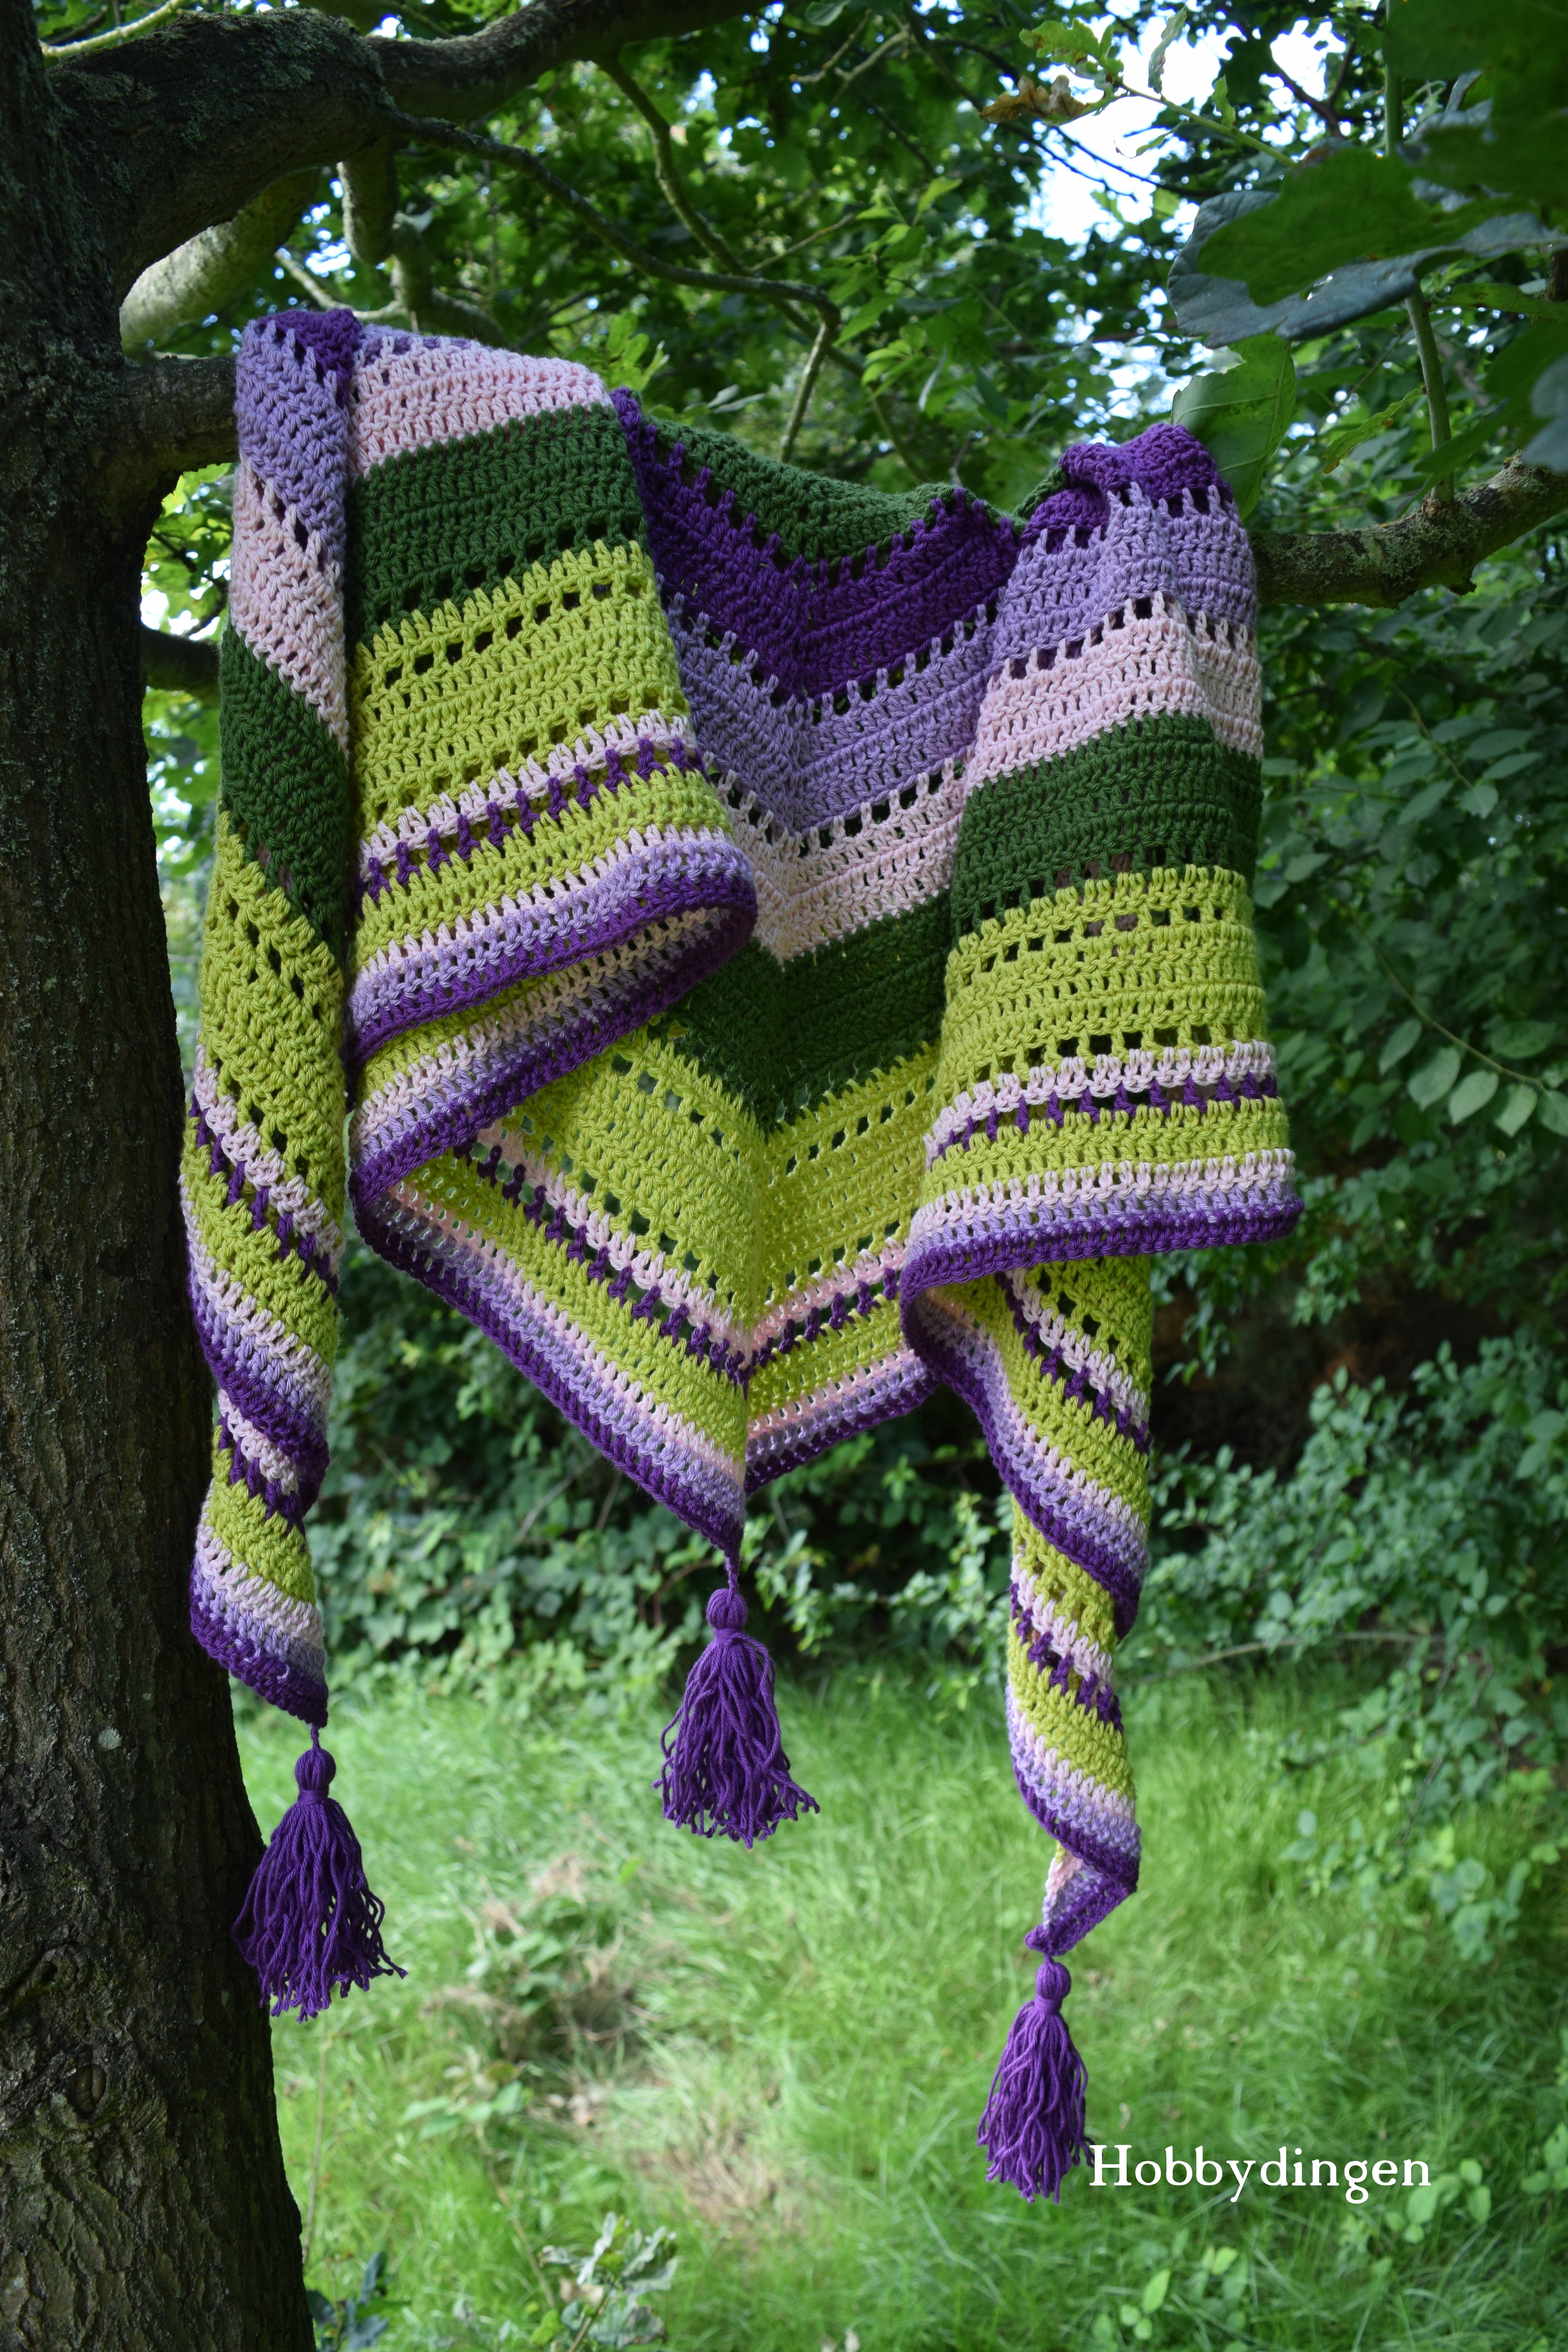 Hobbydingen.com - The Holiday Shawl